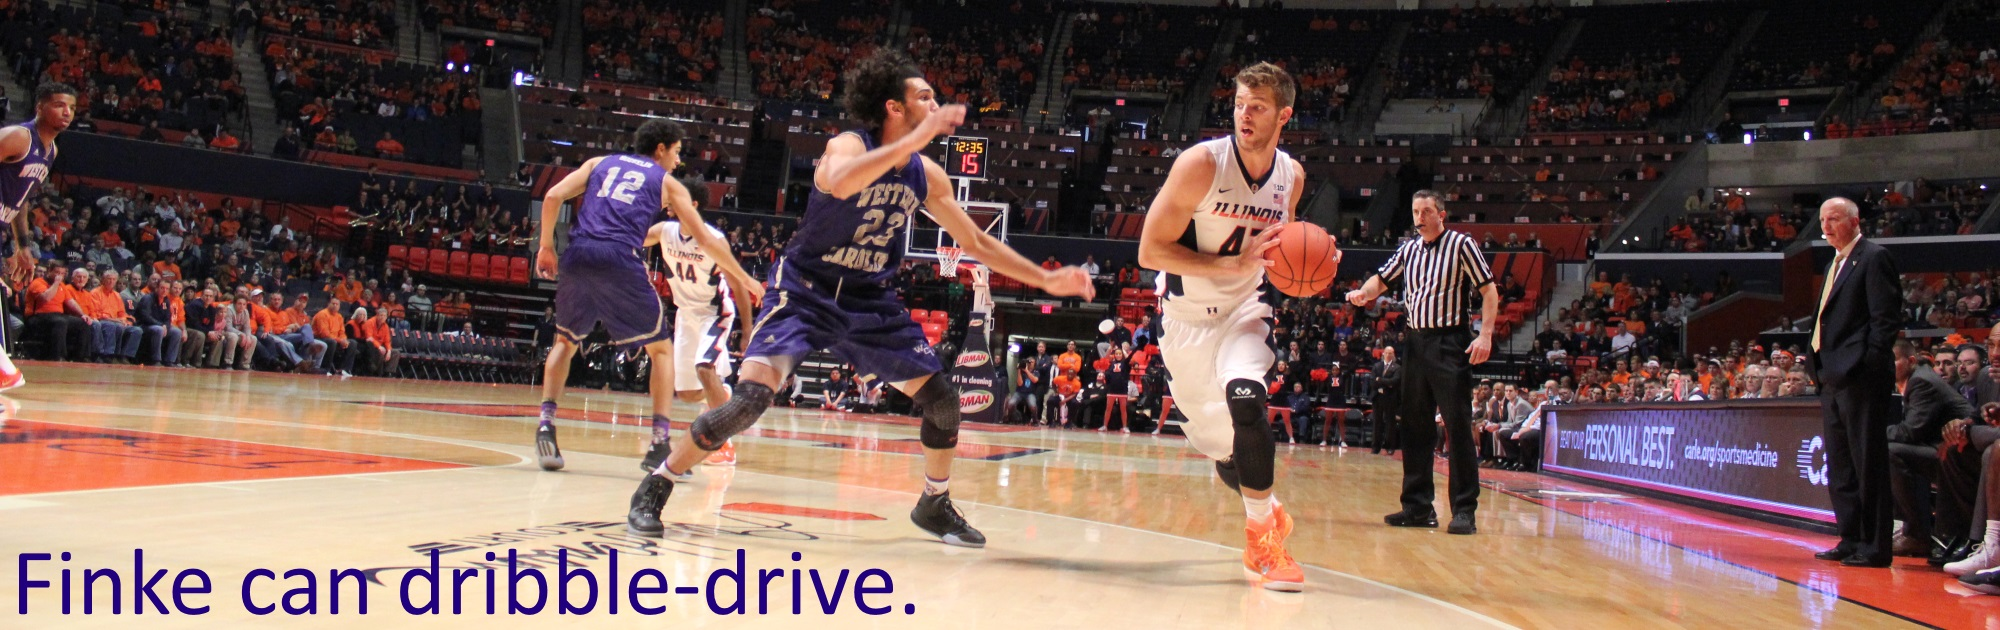 Finke can dribble-drive